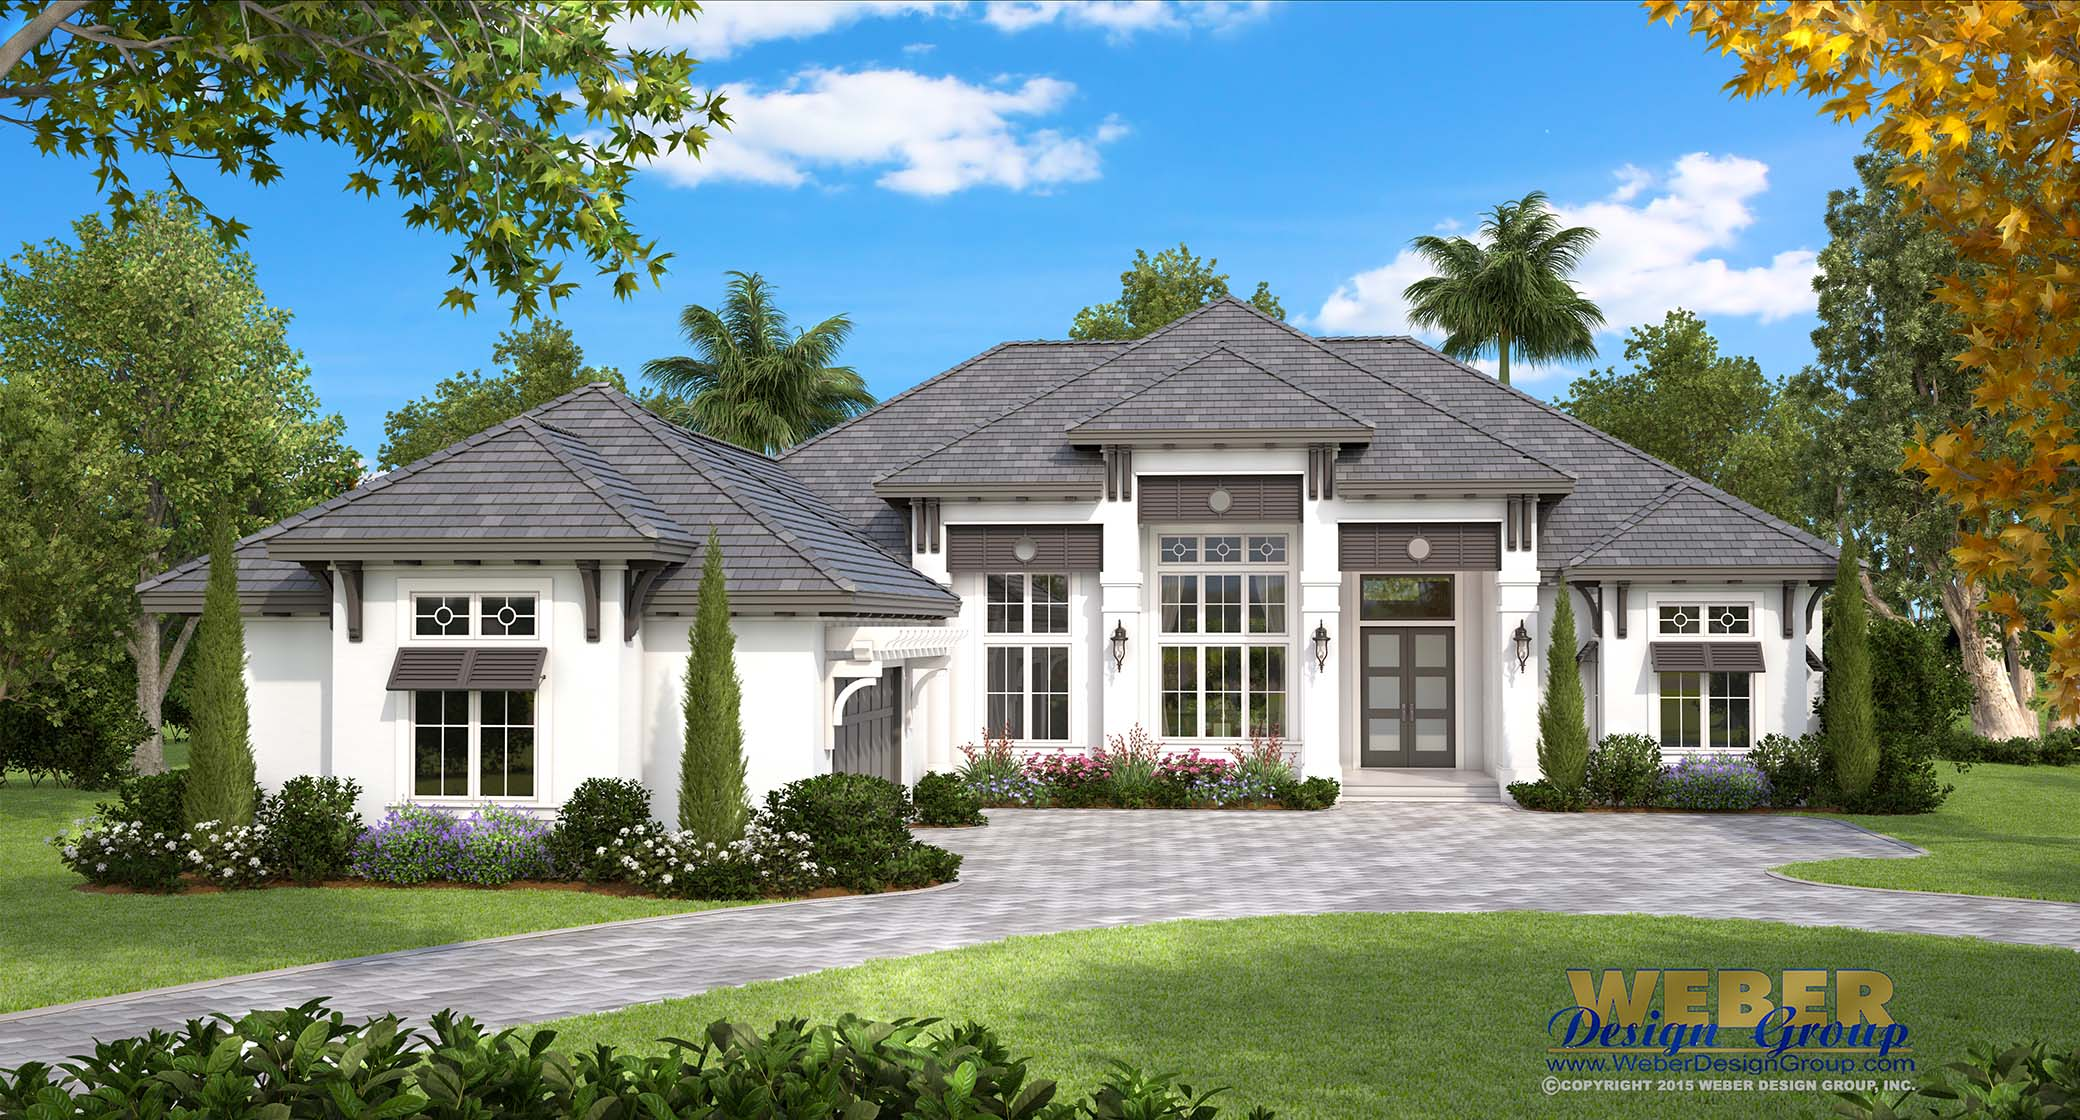 Beach house plan coastal west indies style home floor plan this single story island inspired west indies house plan provides just over 4000 square feet of living space with four bedrooms four full baths malvernweather Gallery